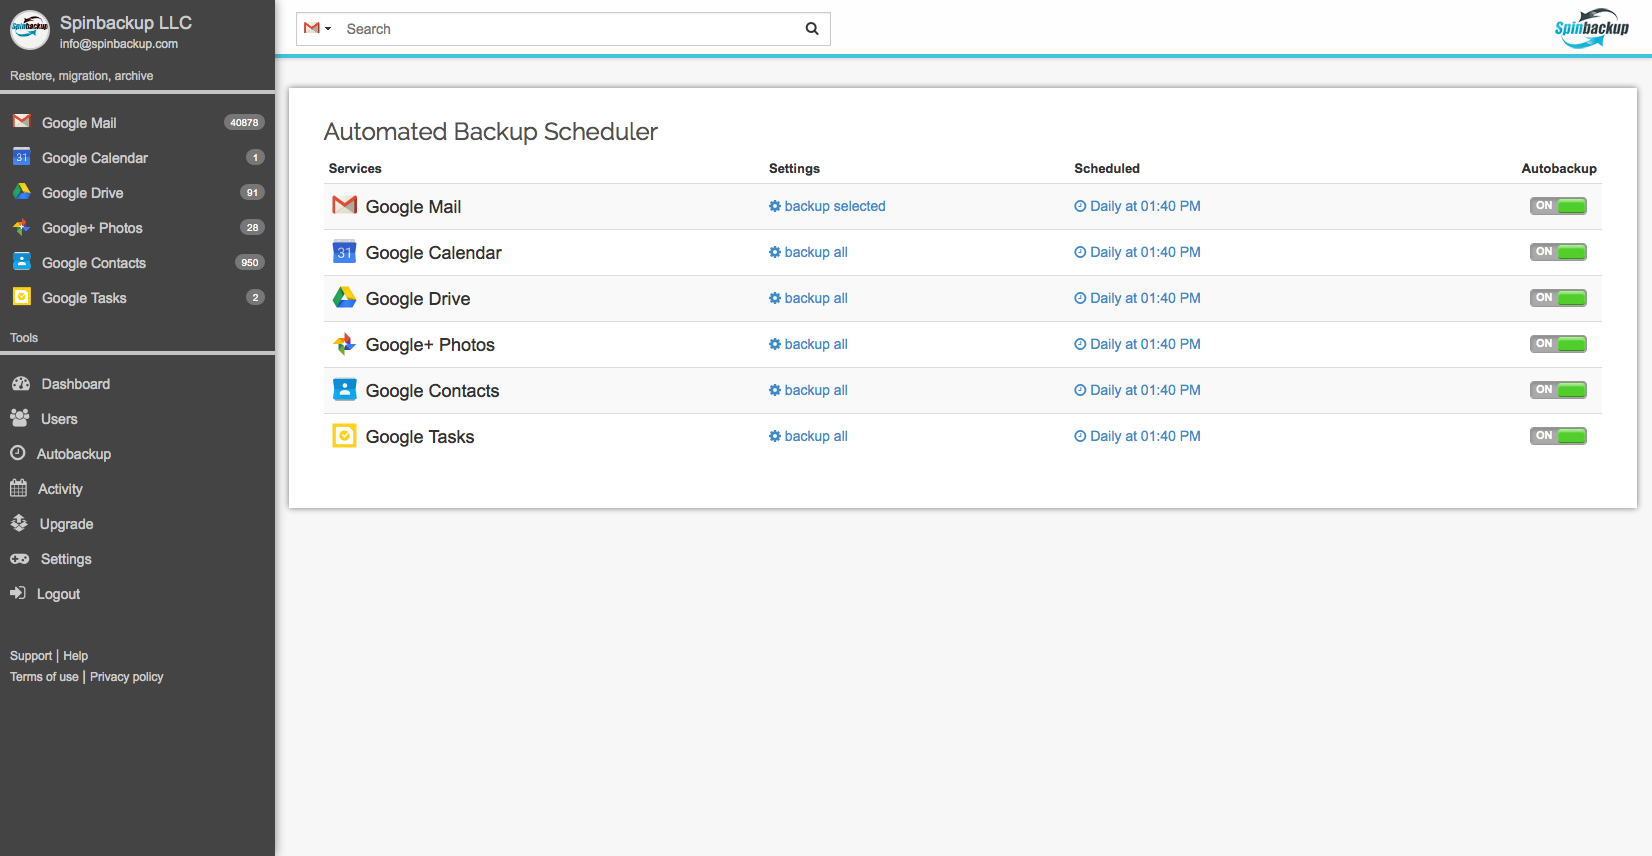 Automated backup scheduler